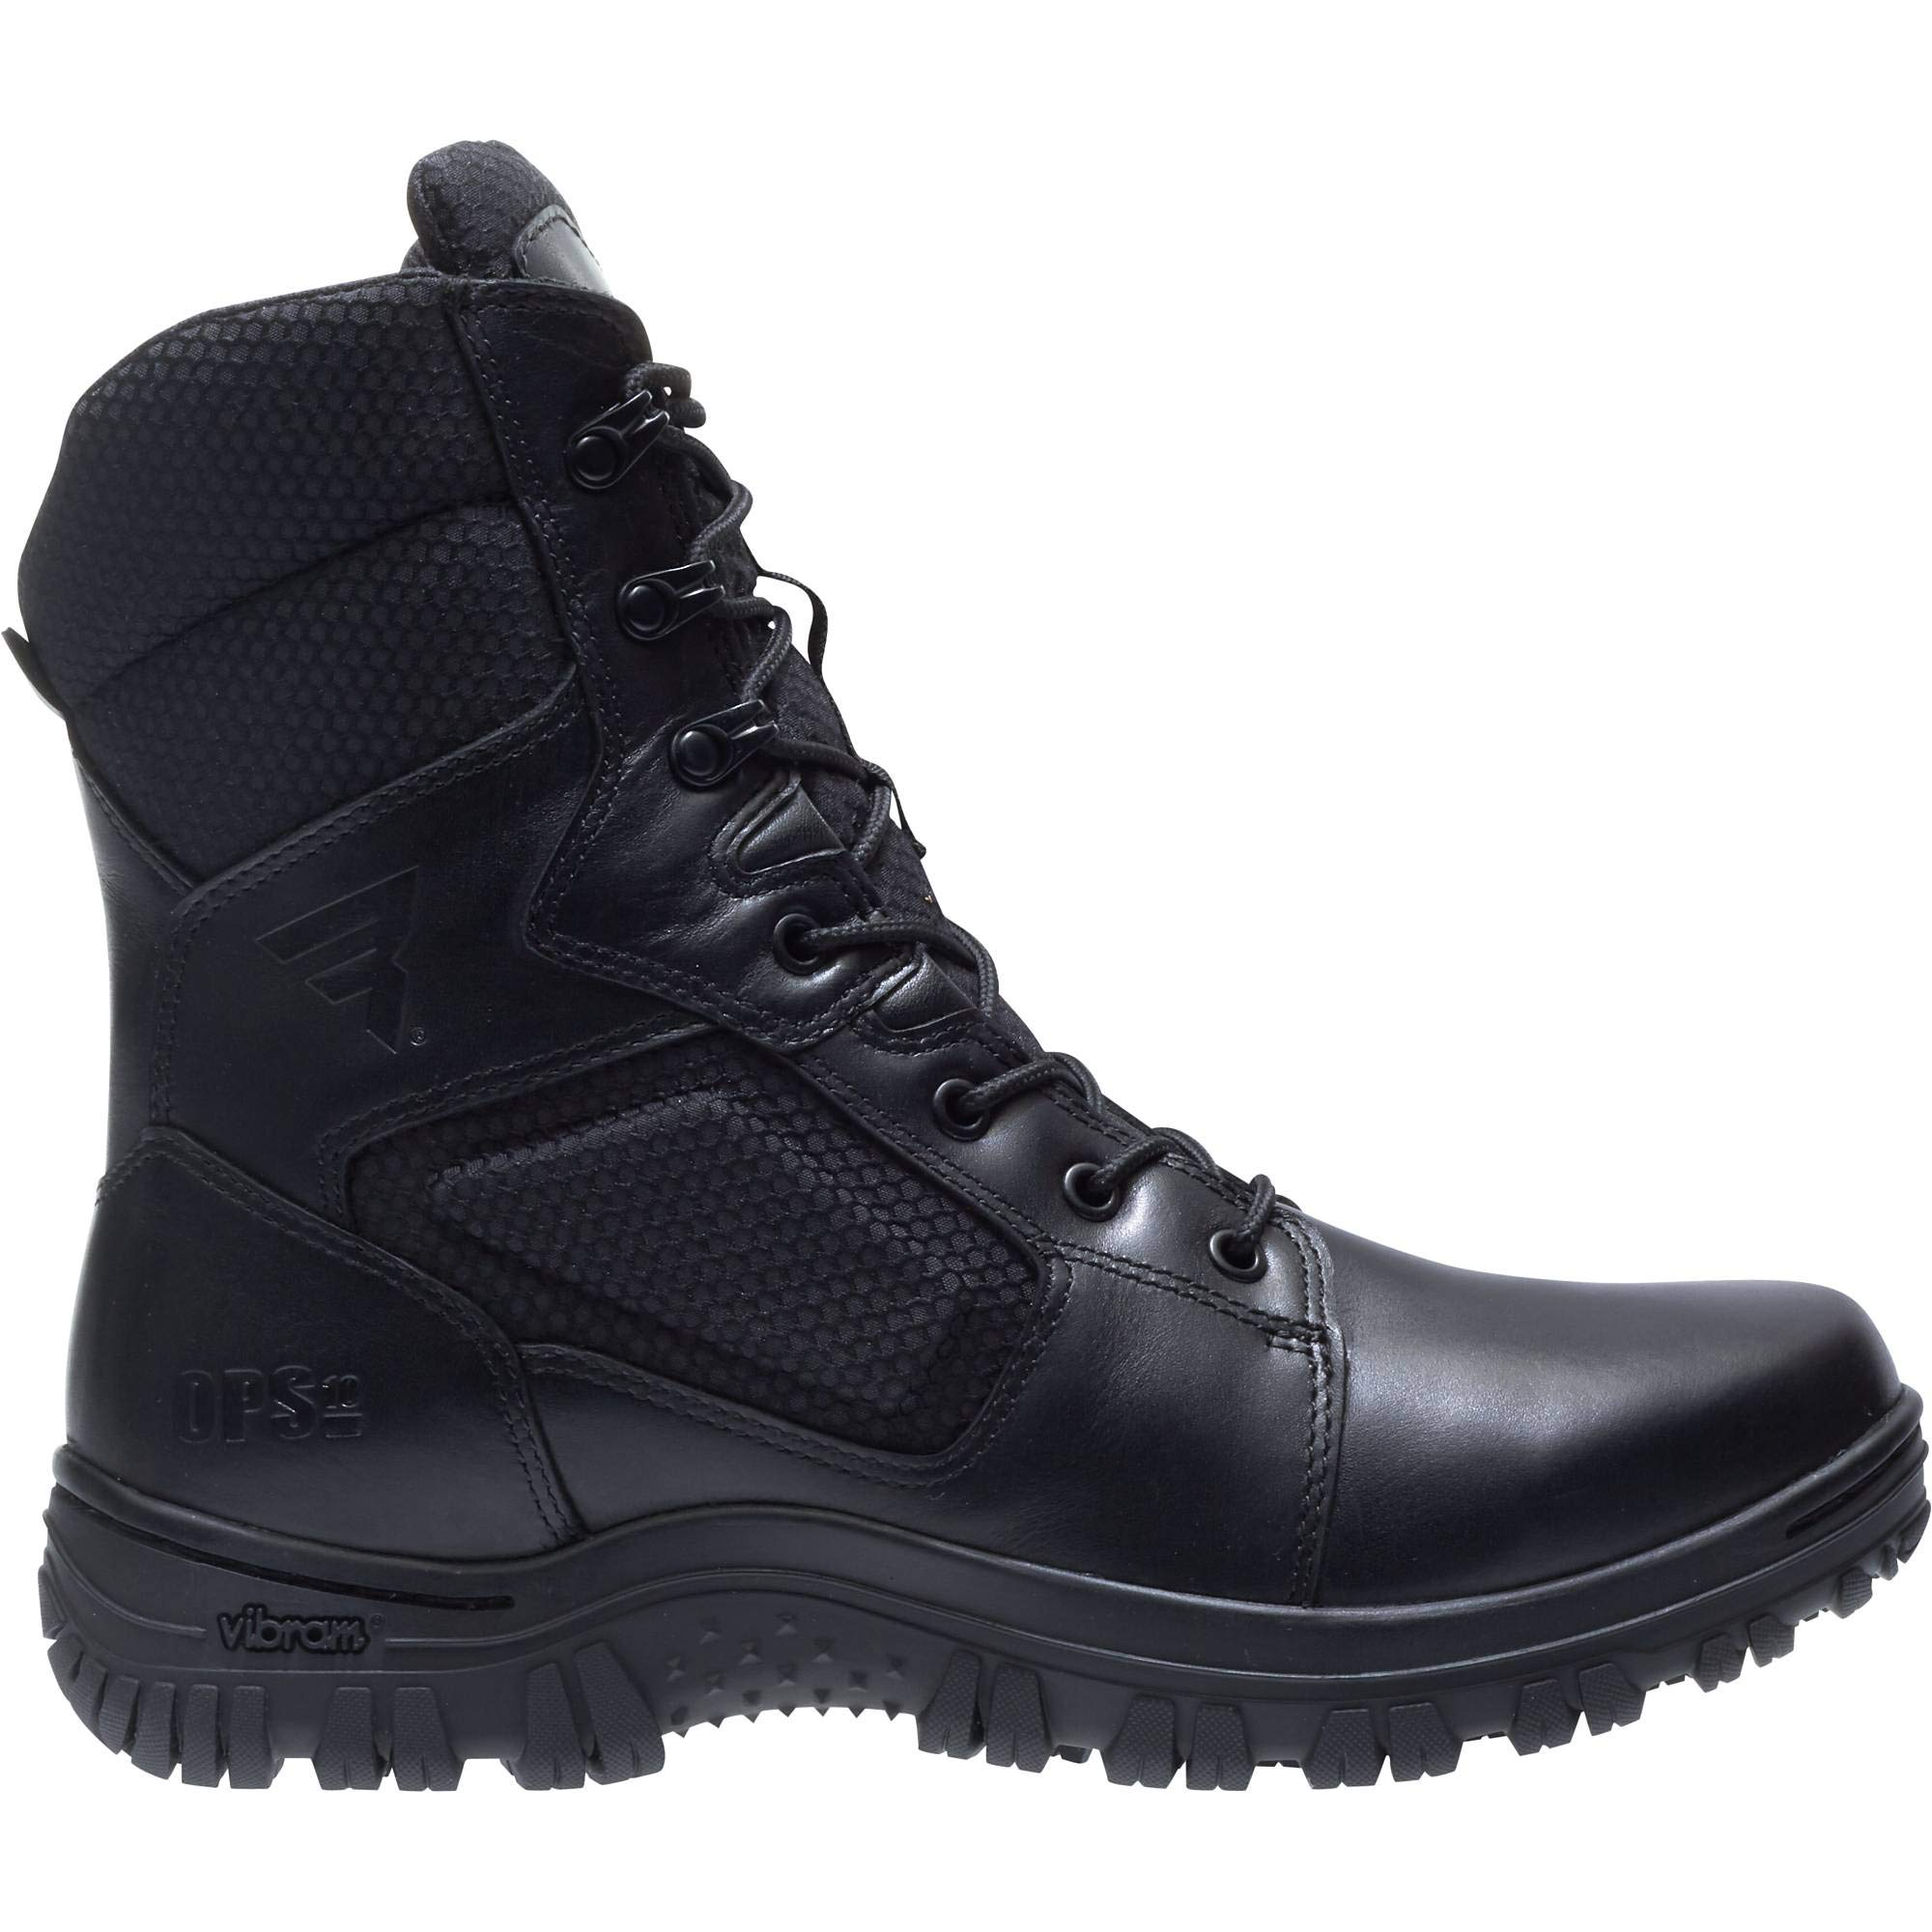 Bates Men's Maneuver Waterproof Fire and Safety Boot, Black, 9.5 M US by Bates